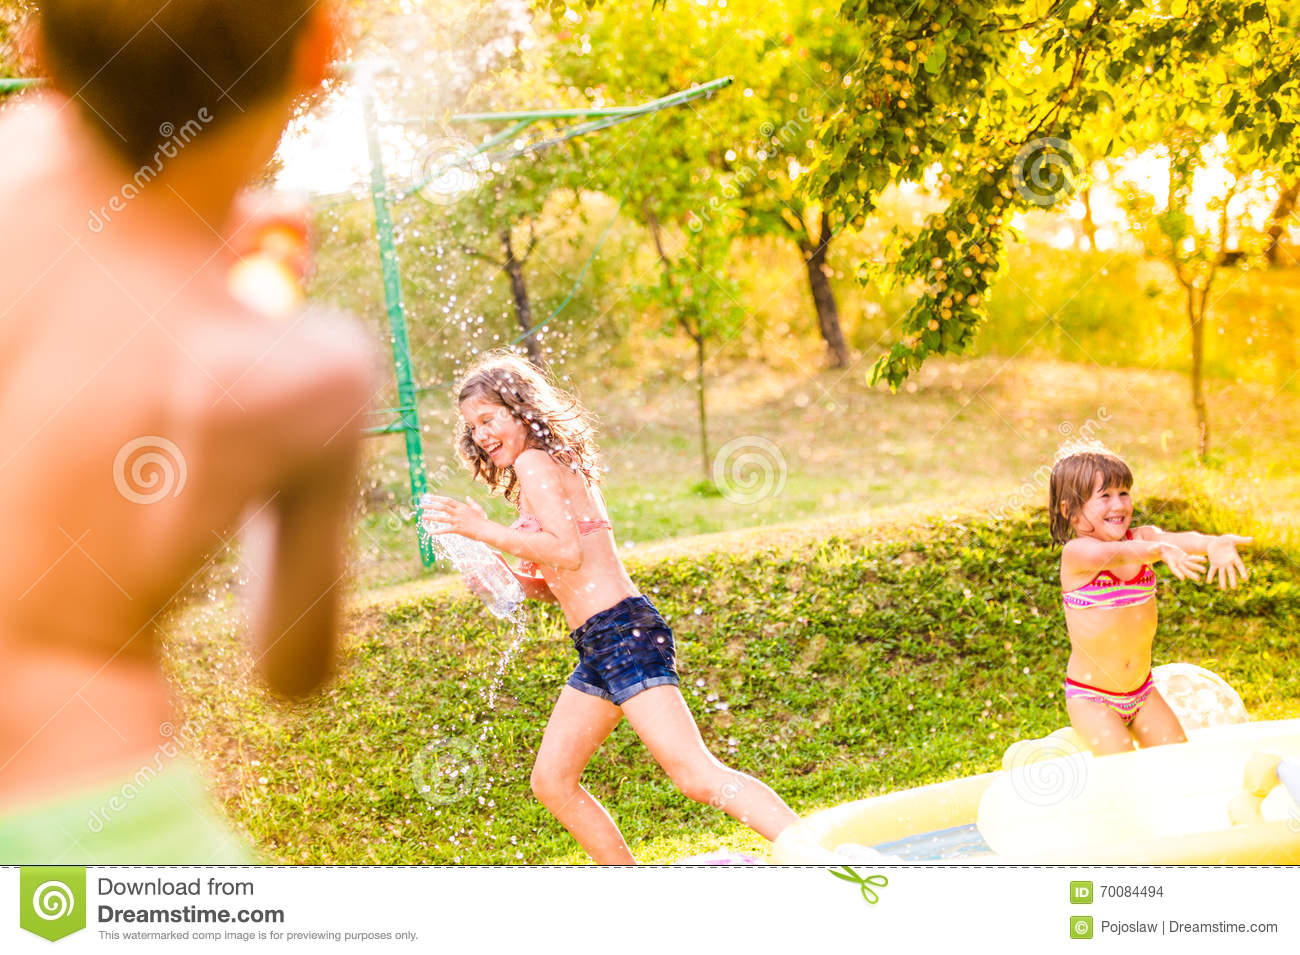 Stunning Boy Splashing Girls With Water Gun In The Garden Stock Photo  With Fair Boy Splashing Girls With Water Gun In The Garden With Breathtaking Sanctuary Spa Covent Garden Mum To Be Also Hilton Garden Inn Fort Washington Pa In Addition Mirror In Garden And Waldorf Covent Garden Afternoon Tea As Well As Astrology Shop Covent Garden Additionally Stanhope Gardens From Dreamstimecom With   Fair Boy Splashing Girls With Water Gun In The Garden Stock Photo  With Breathtaking Boy Splashing Girls With Water Gun In The Garden And Stunning Sanctuary Spa Covent Garden Mum To Be Also Hilton Garden Inn Fort Washington Pa In Addition Mirror In Garden From Dreamstimecom